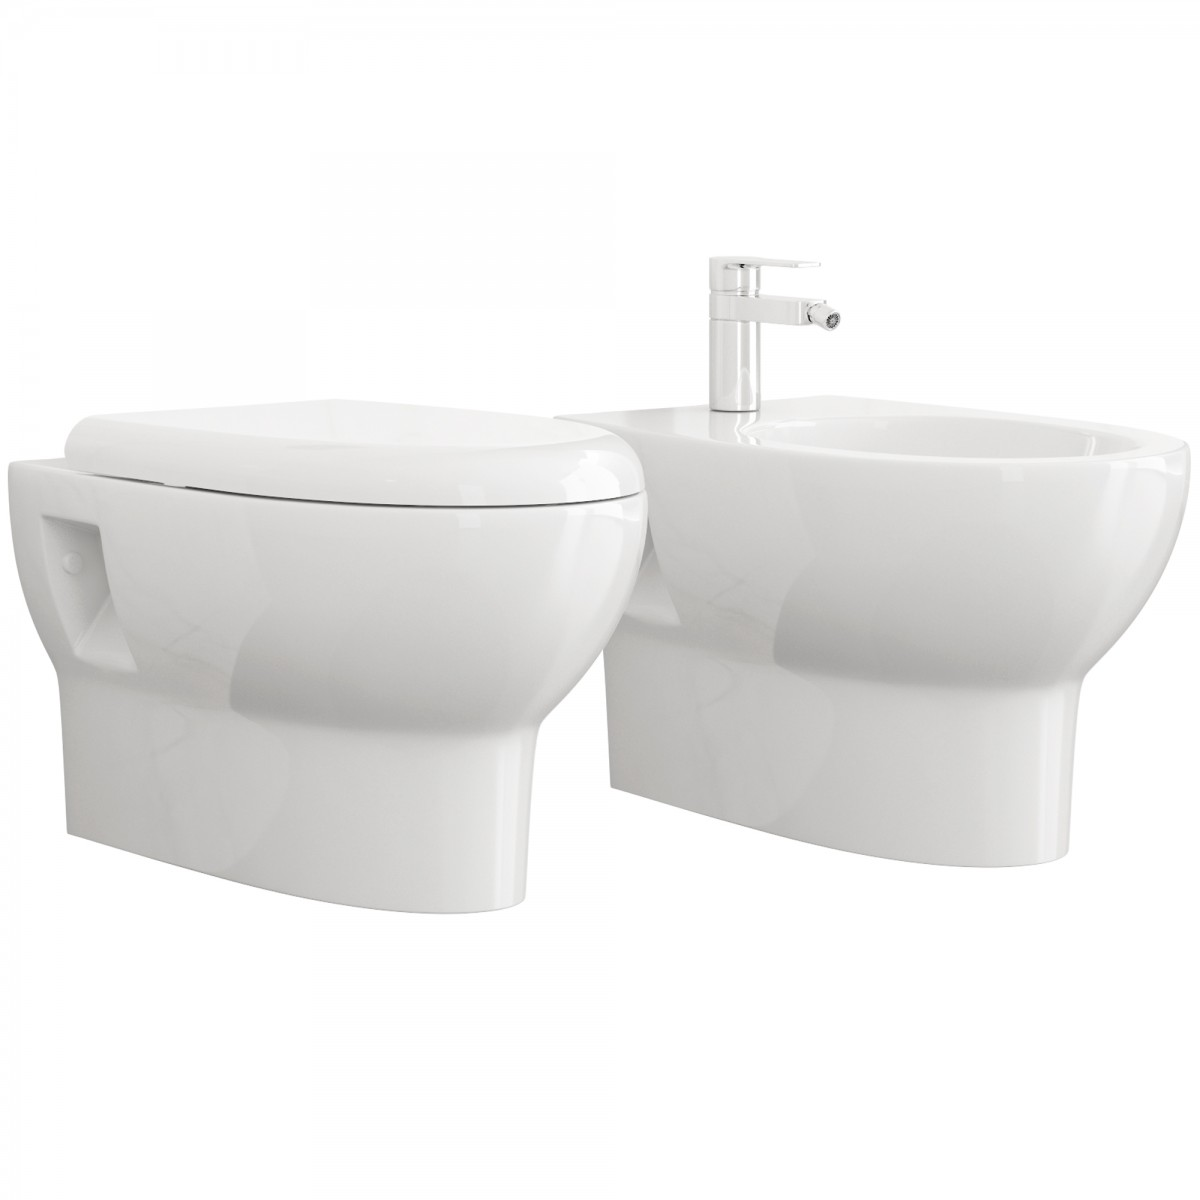 Sanitari sospesi rimless wc e bidè Andy